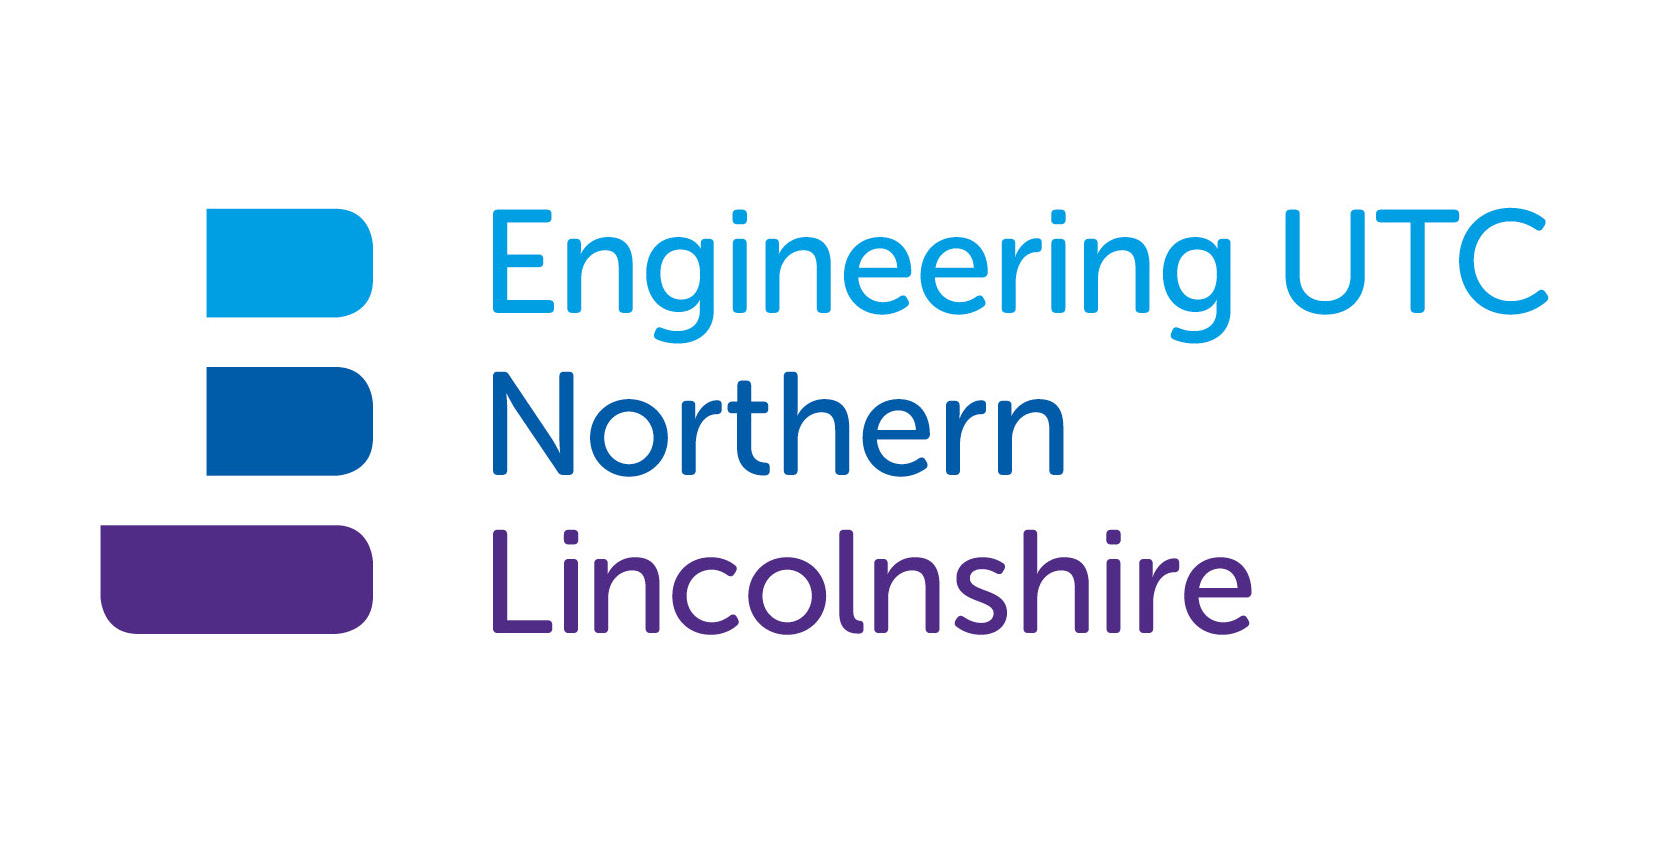 Good Ofsted rating for Engineering UTC Northern Lincolnshire